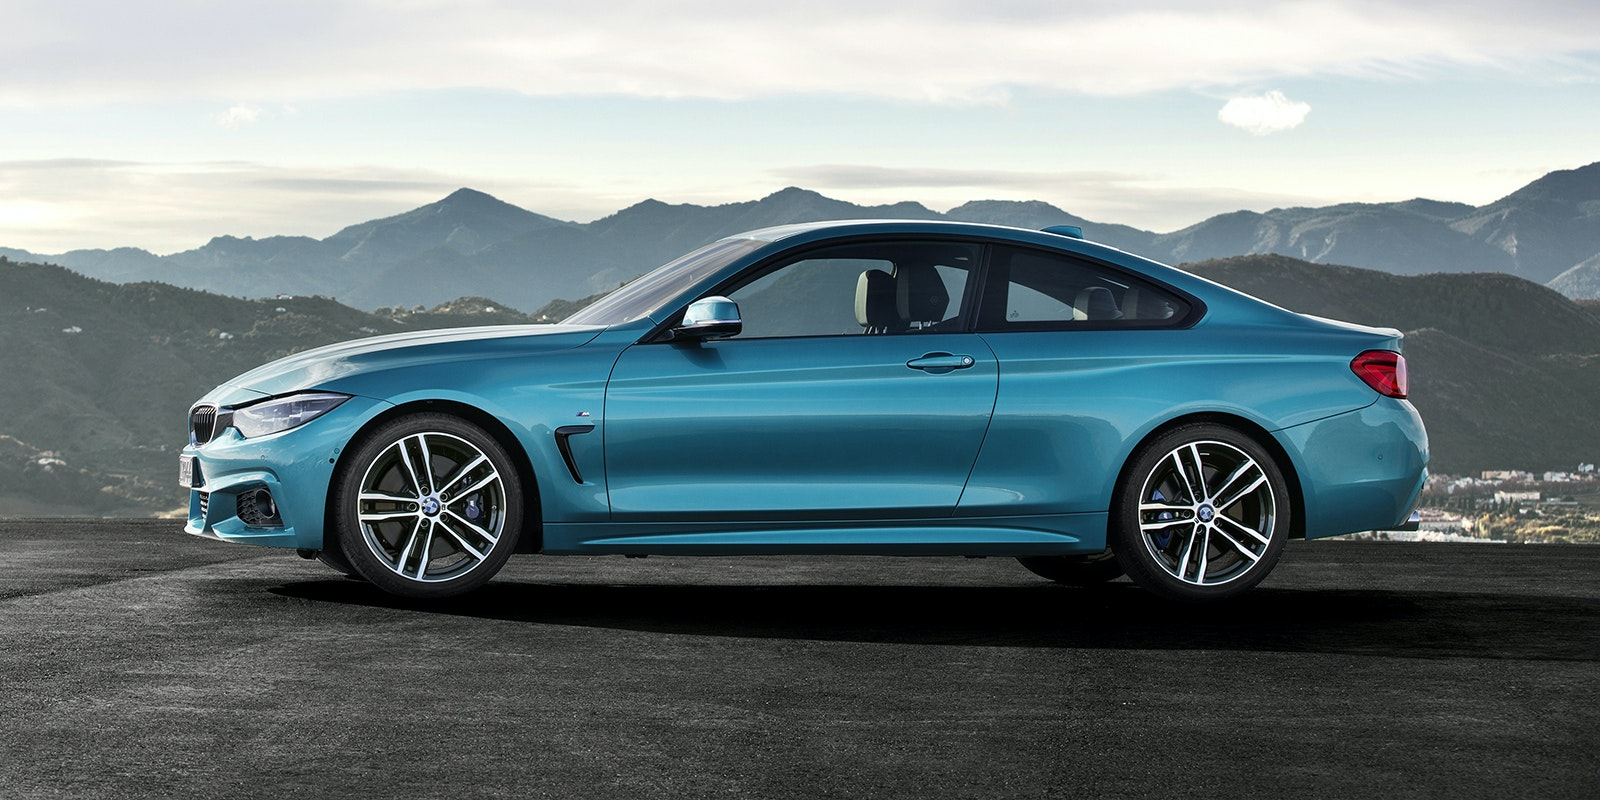 Bmw 4 series header.jpg?ixlib=rb 1.1